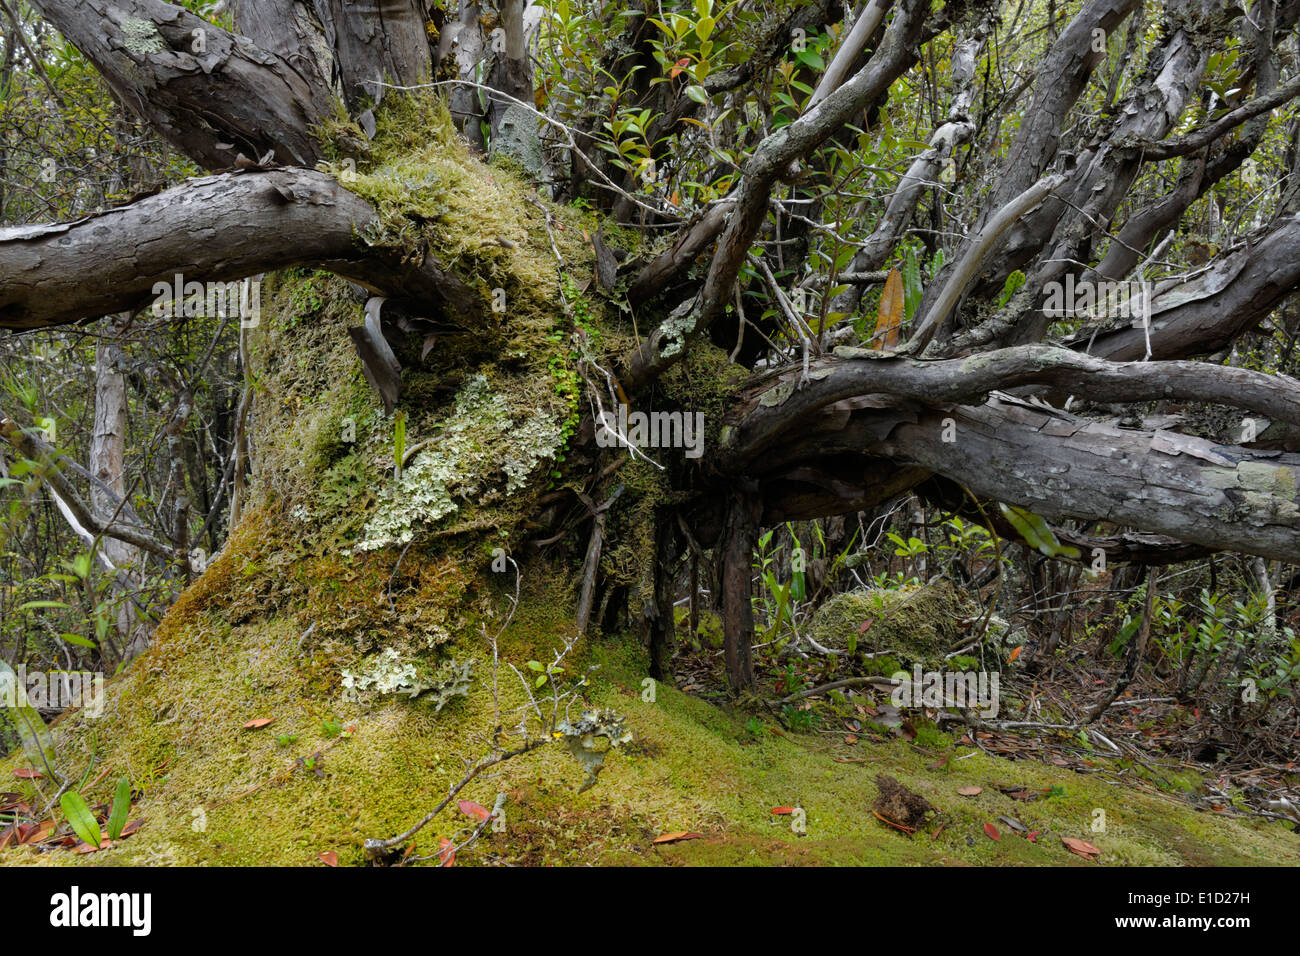 Sub-Antarctic tree in forest on Enderby island. Stock Photo